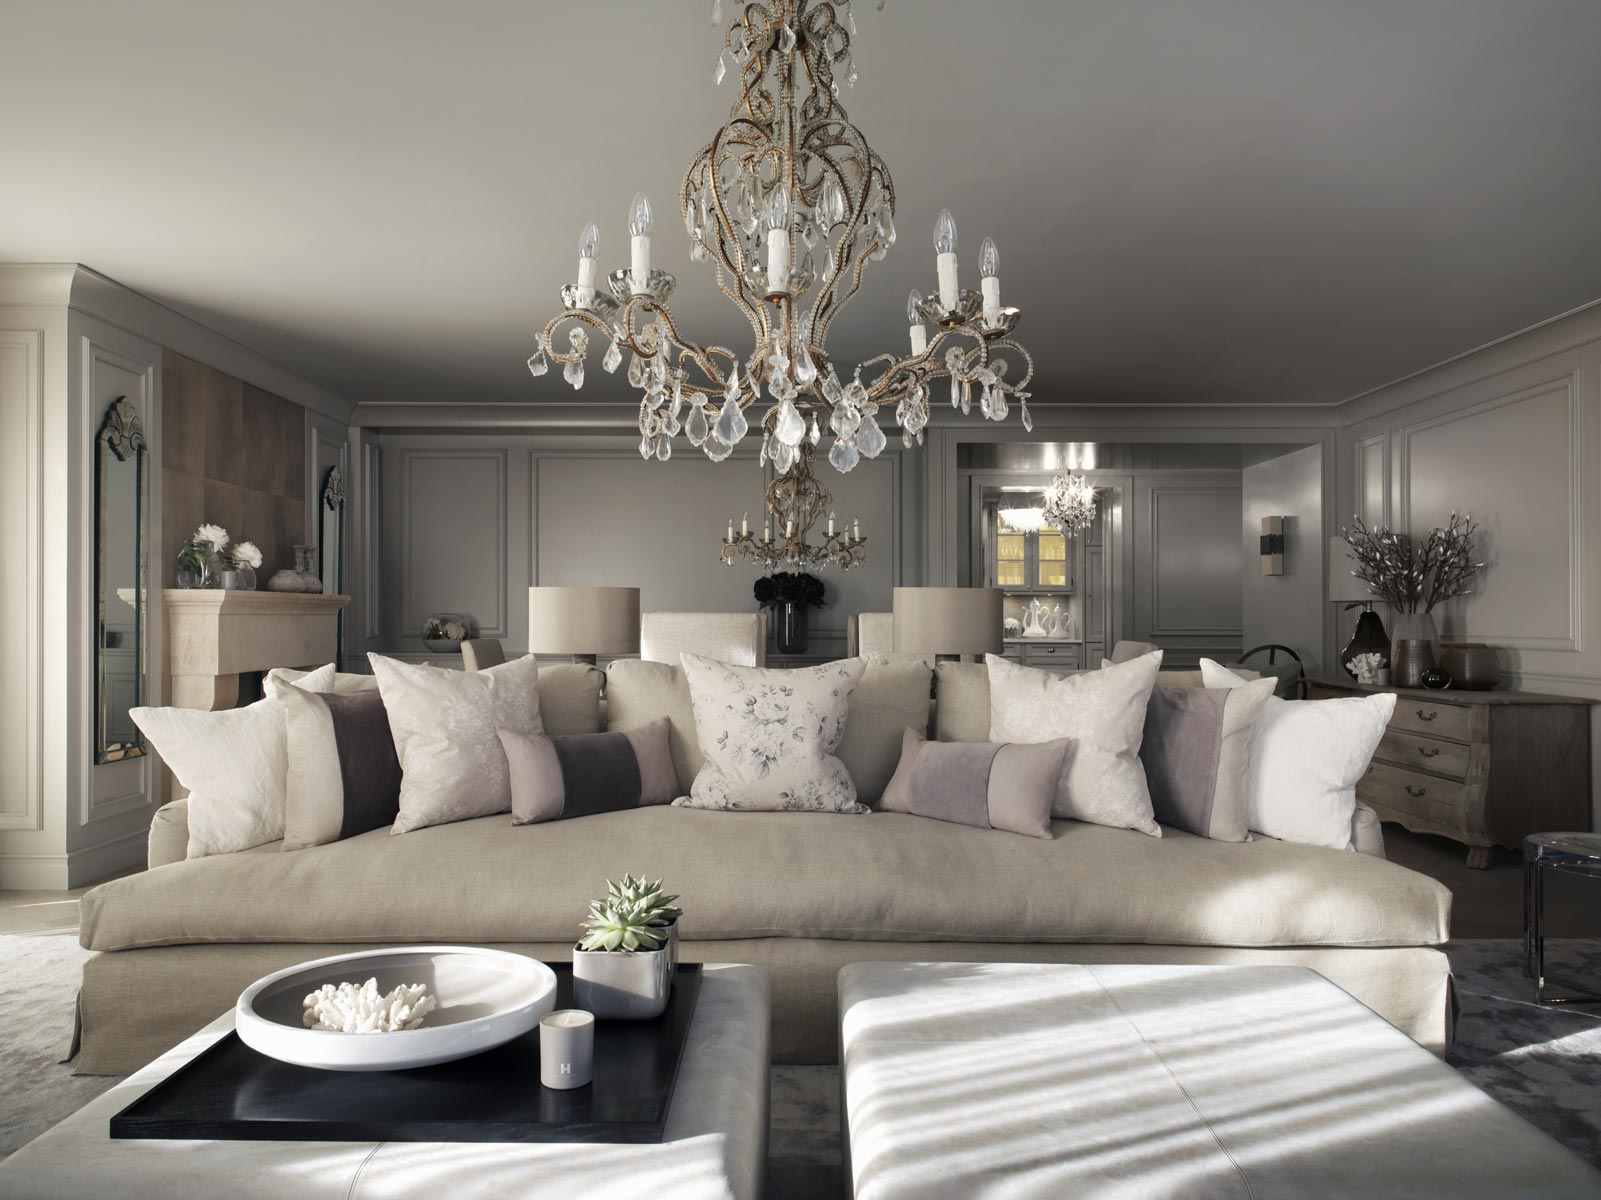 Top 10 kelly hoppen design ideas for Interior design inspiration for bedrooms